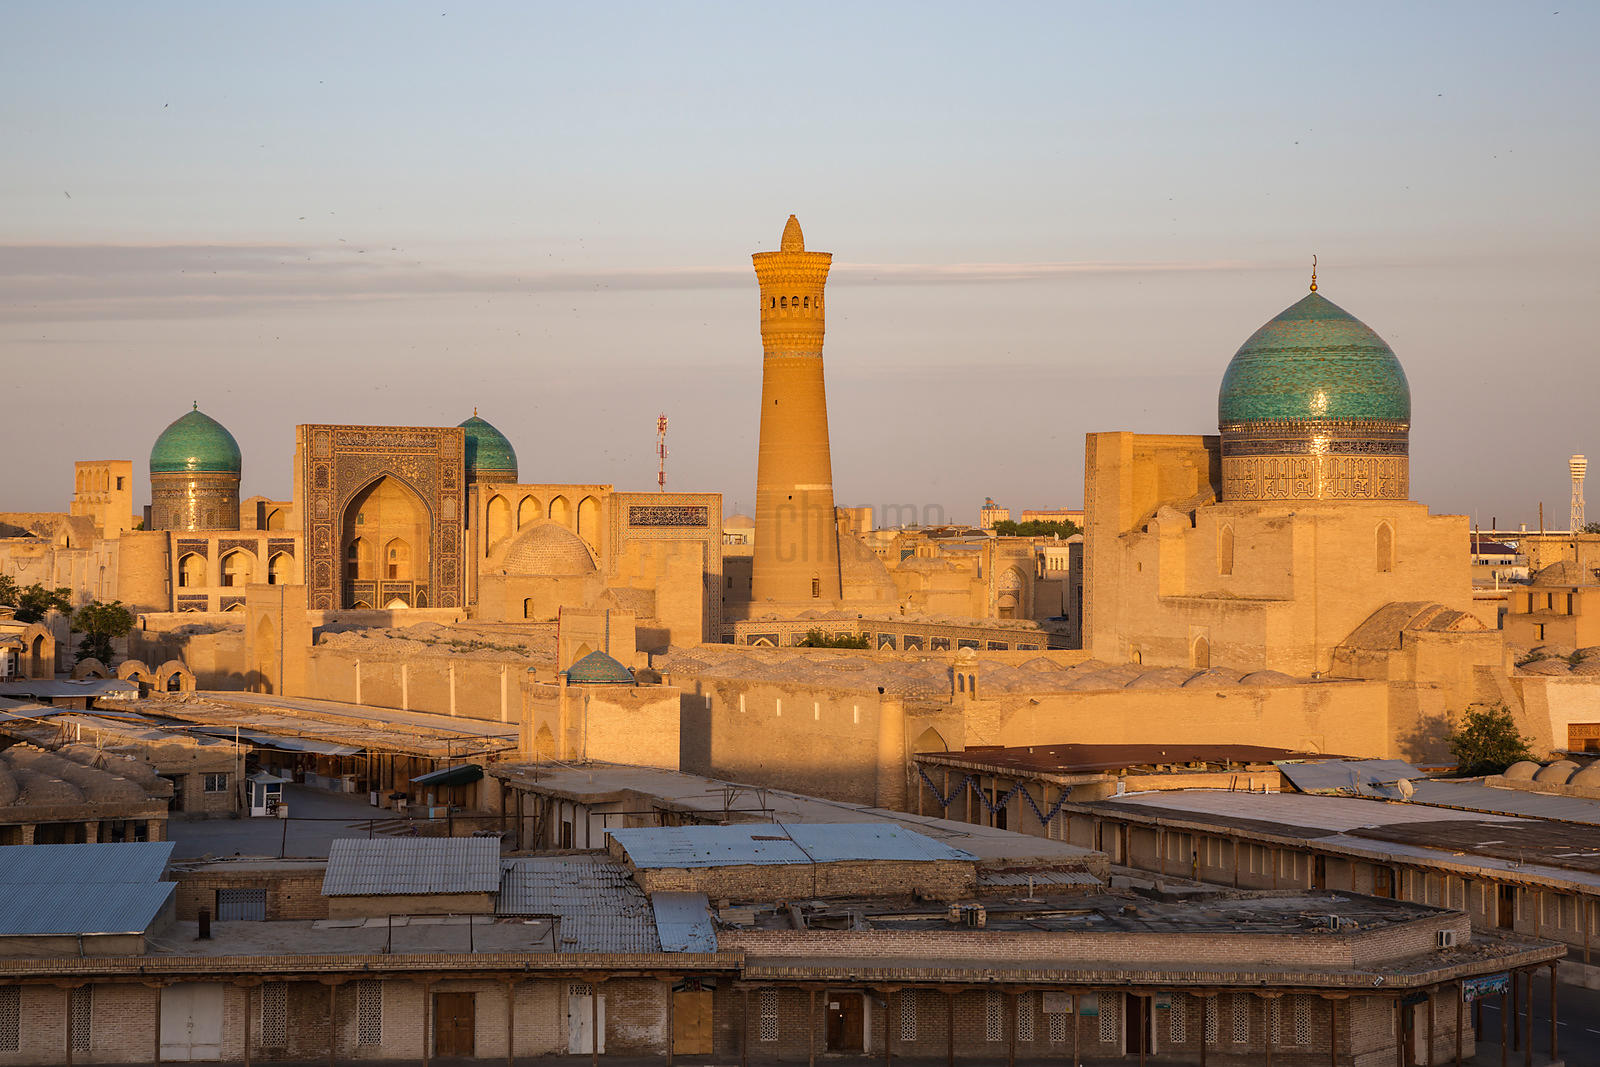 Skyline View of the Old City of Bukhara at Sunset